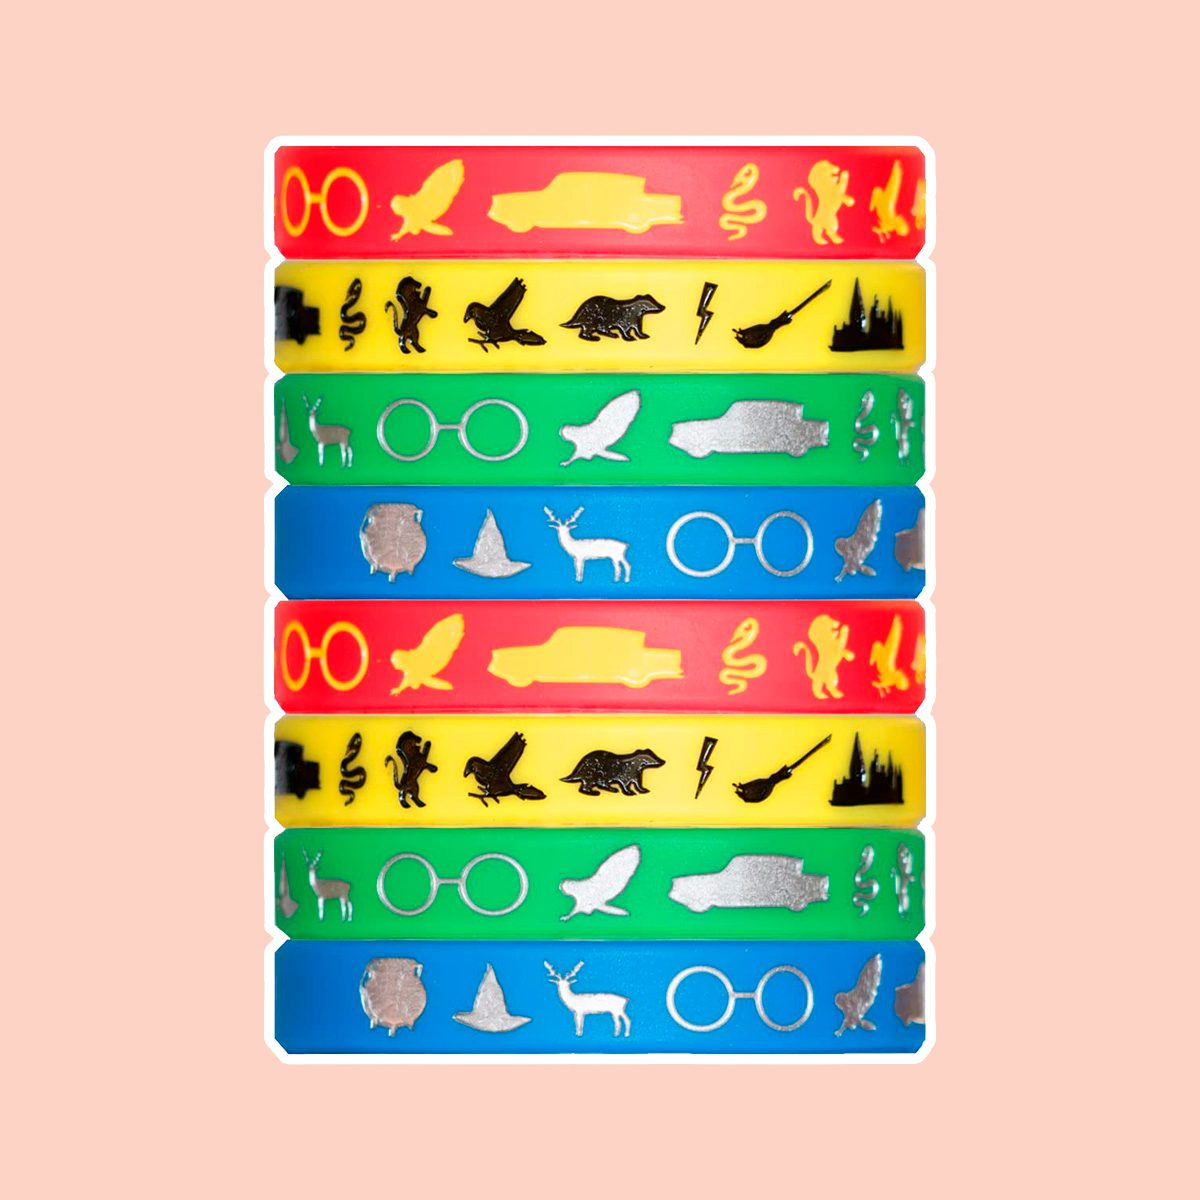 Wizard Houses Silicone Wristbands - 8 Pack Party Favor Set (2 of Each Color) Makes a Great Stocking Stuffer - Makes a Great Gift Under $15